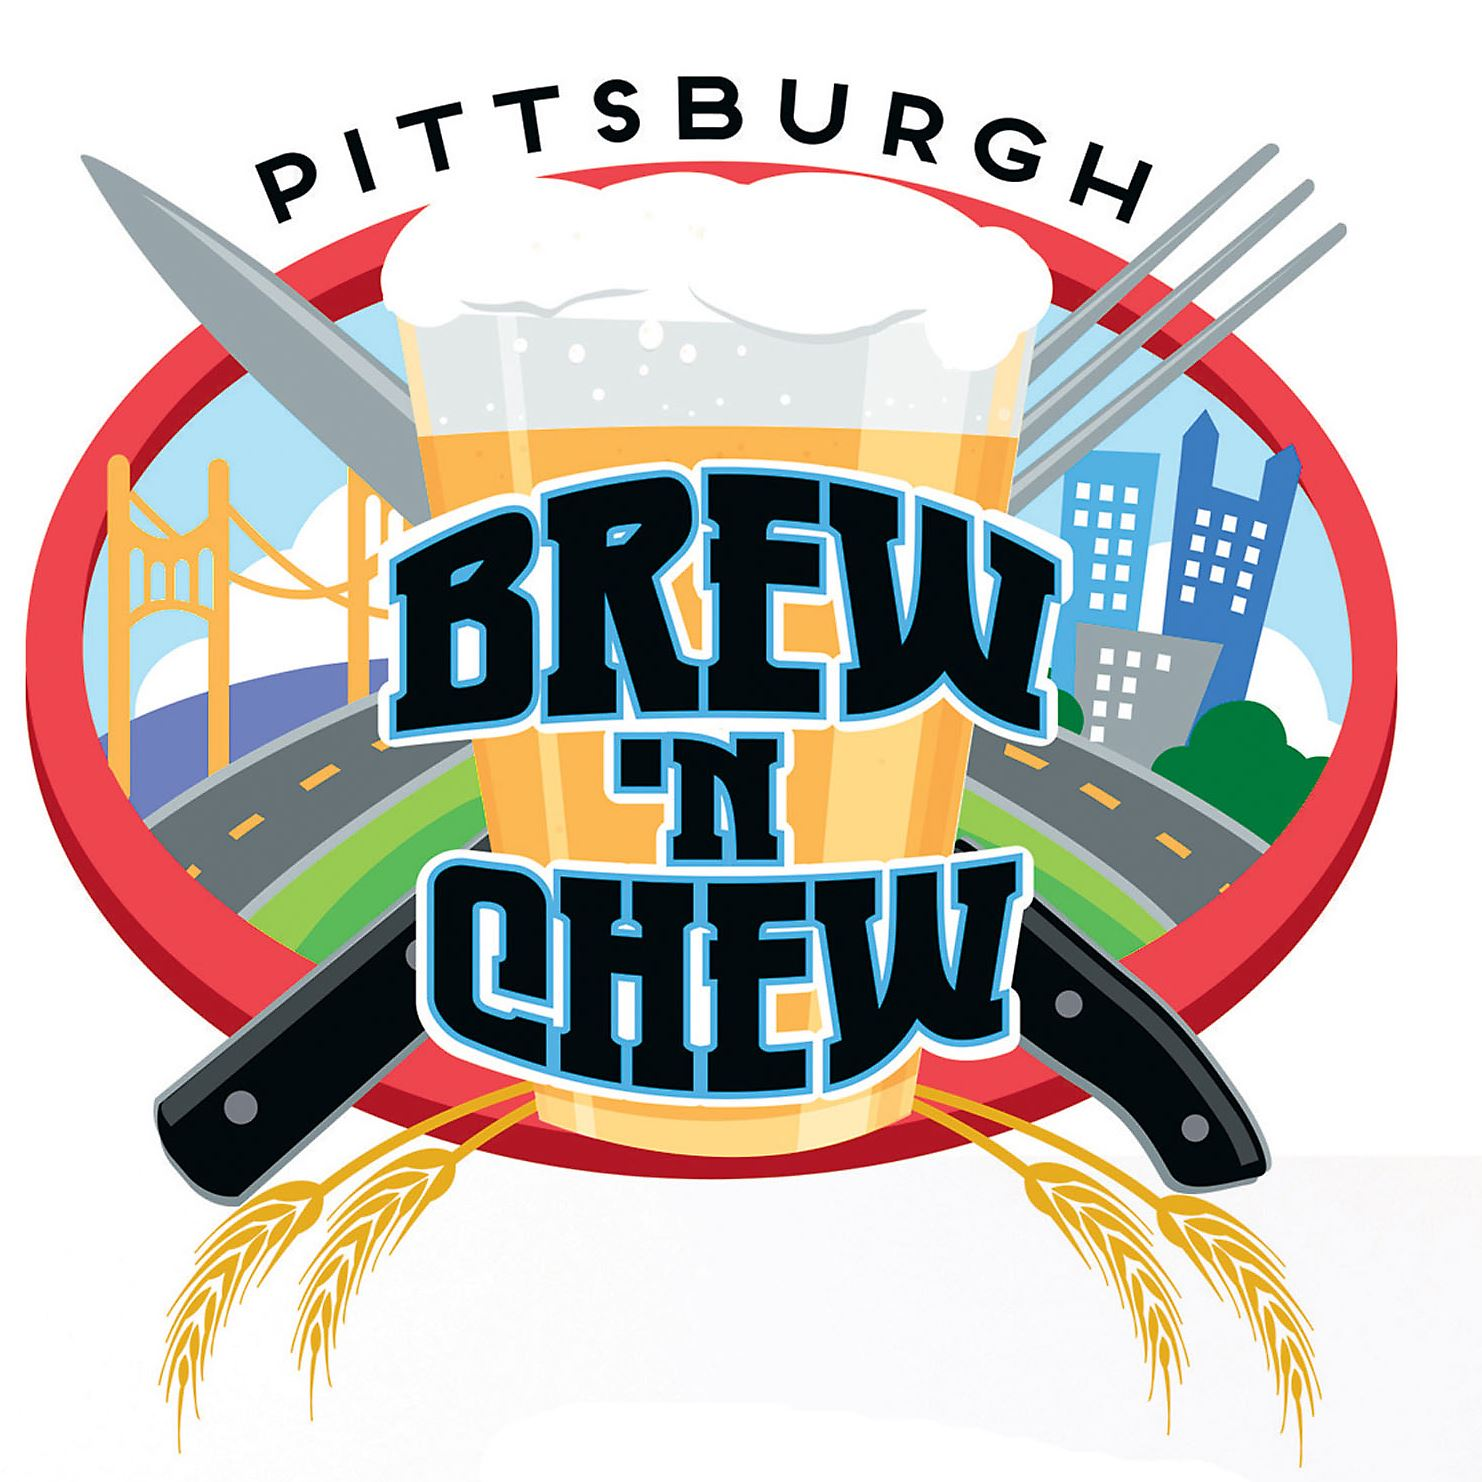 logo_brew_chew_food Brew 'n Chew will take place June 18 at the Monroeville Convention Center.